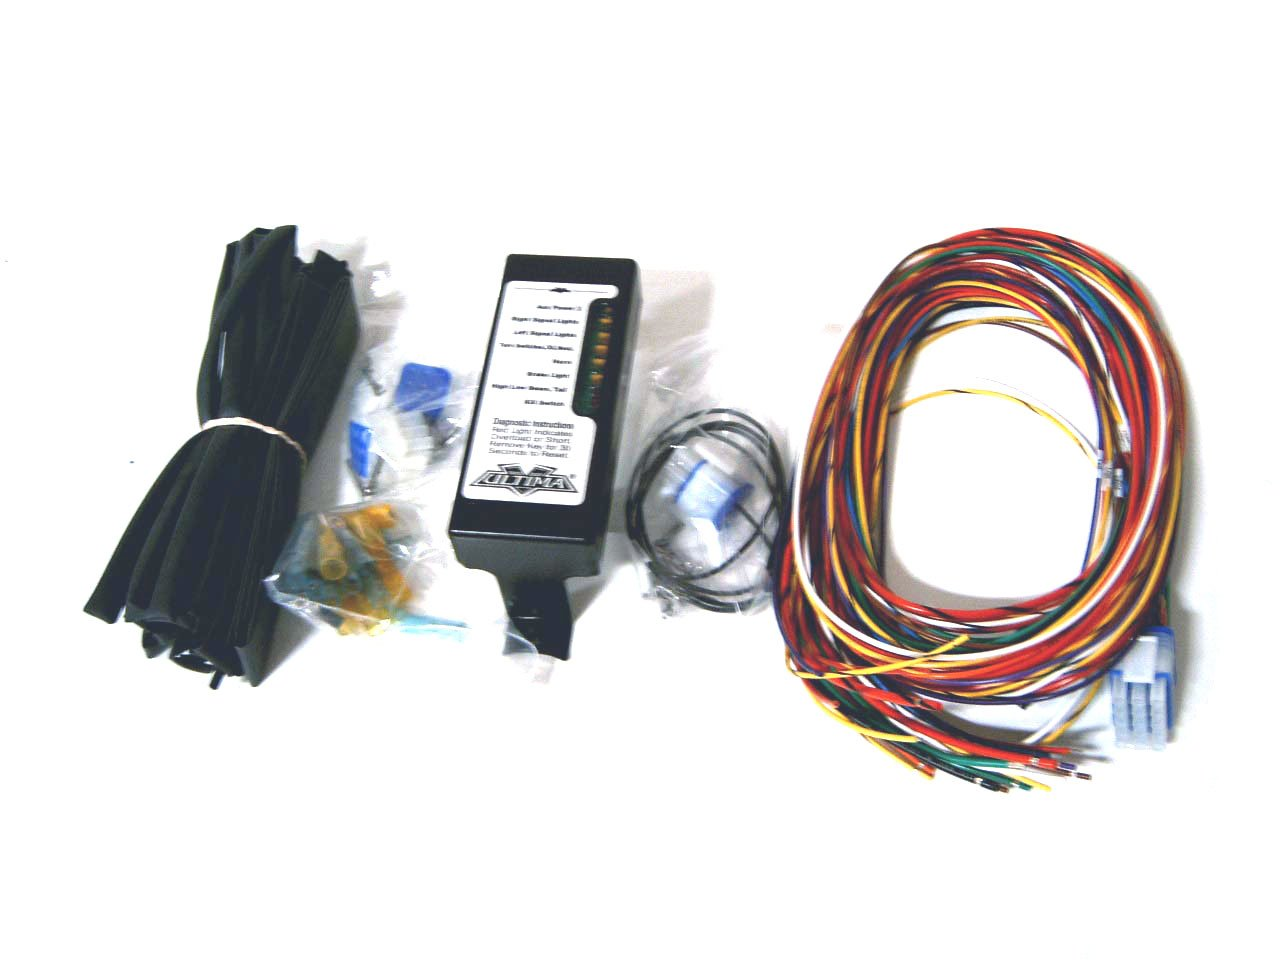 61DV2Bq5%2BHL._SL1280_ amazon com ultima complete wiring harness kit for harley davidson jc wire harness at reclaimingppi.co